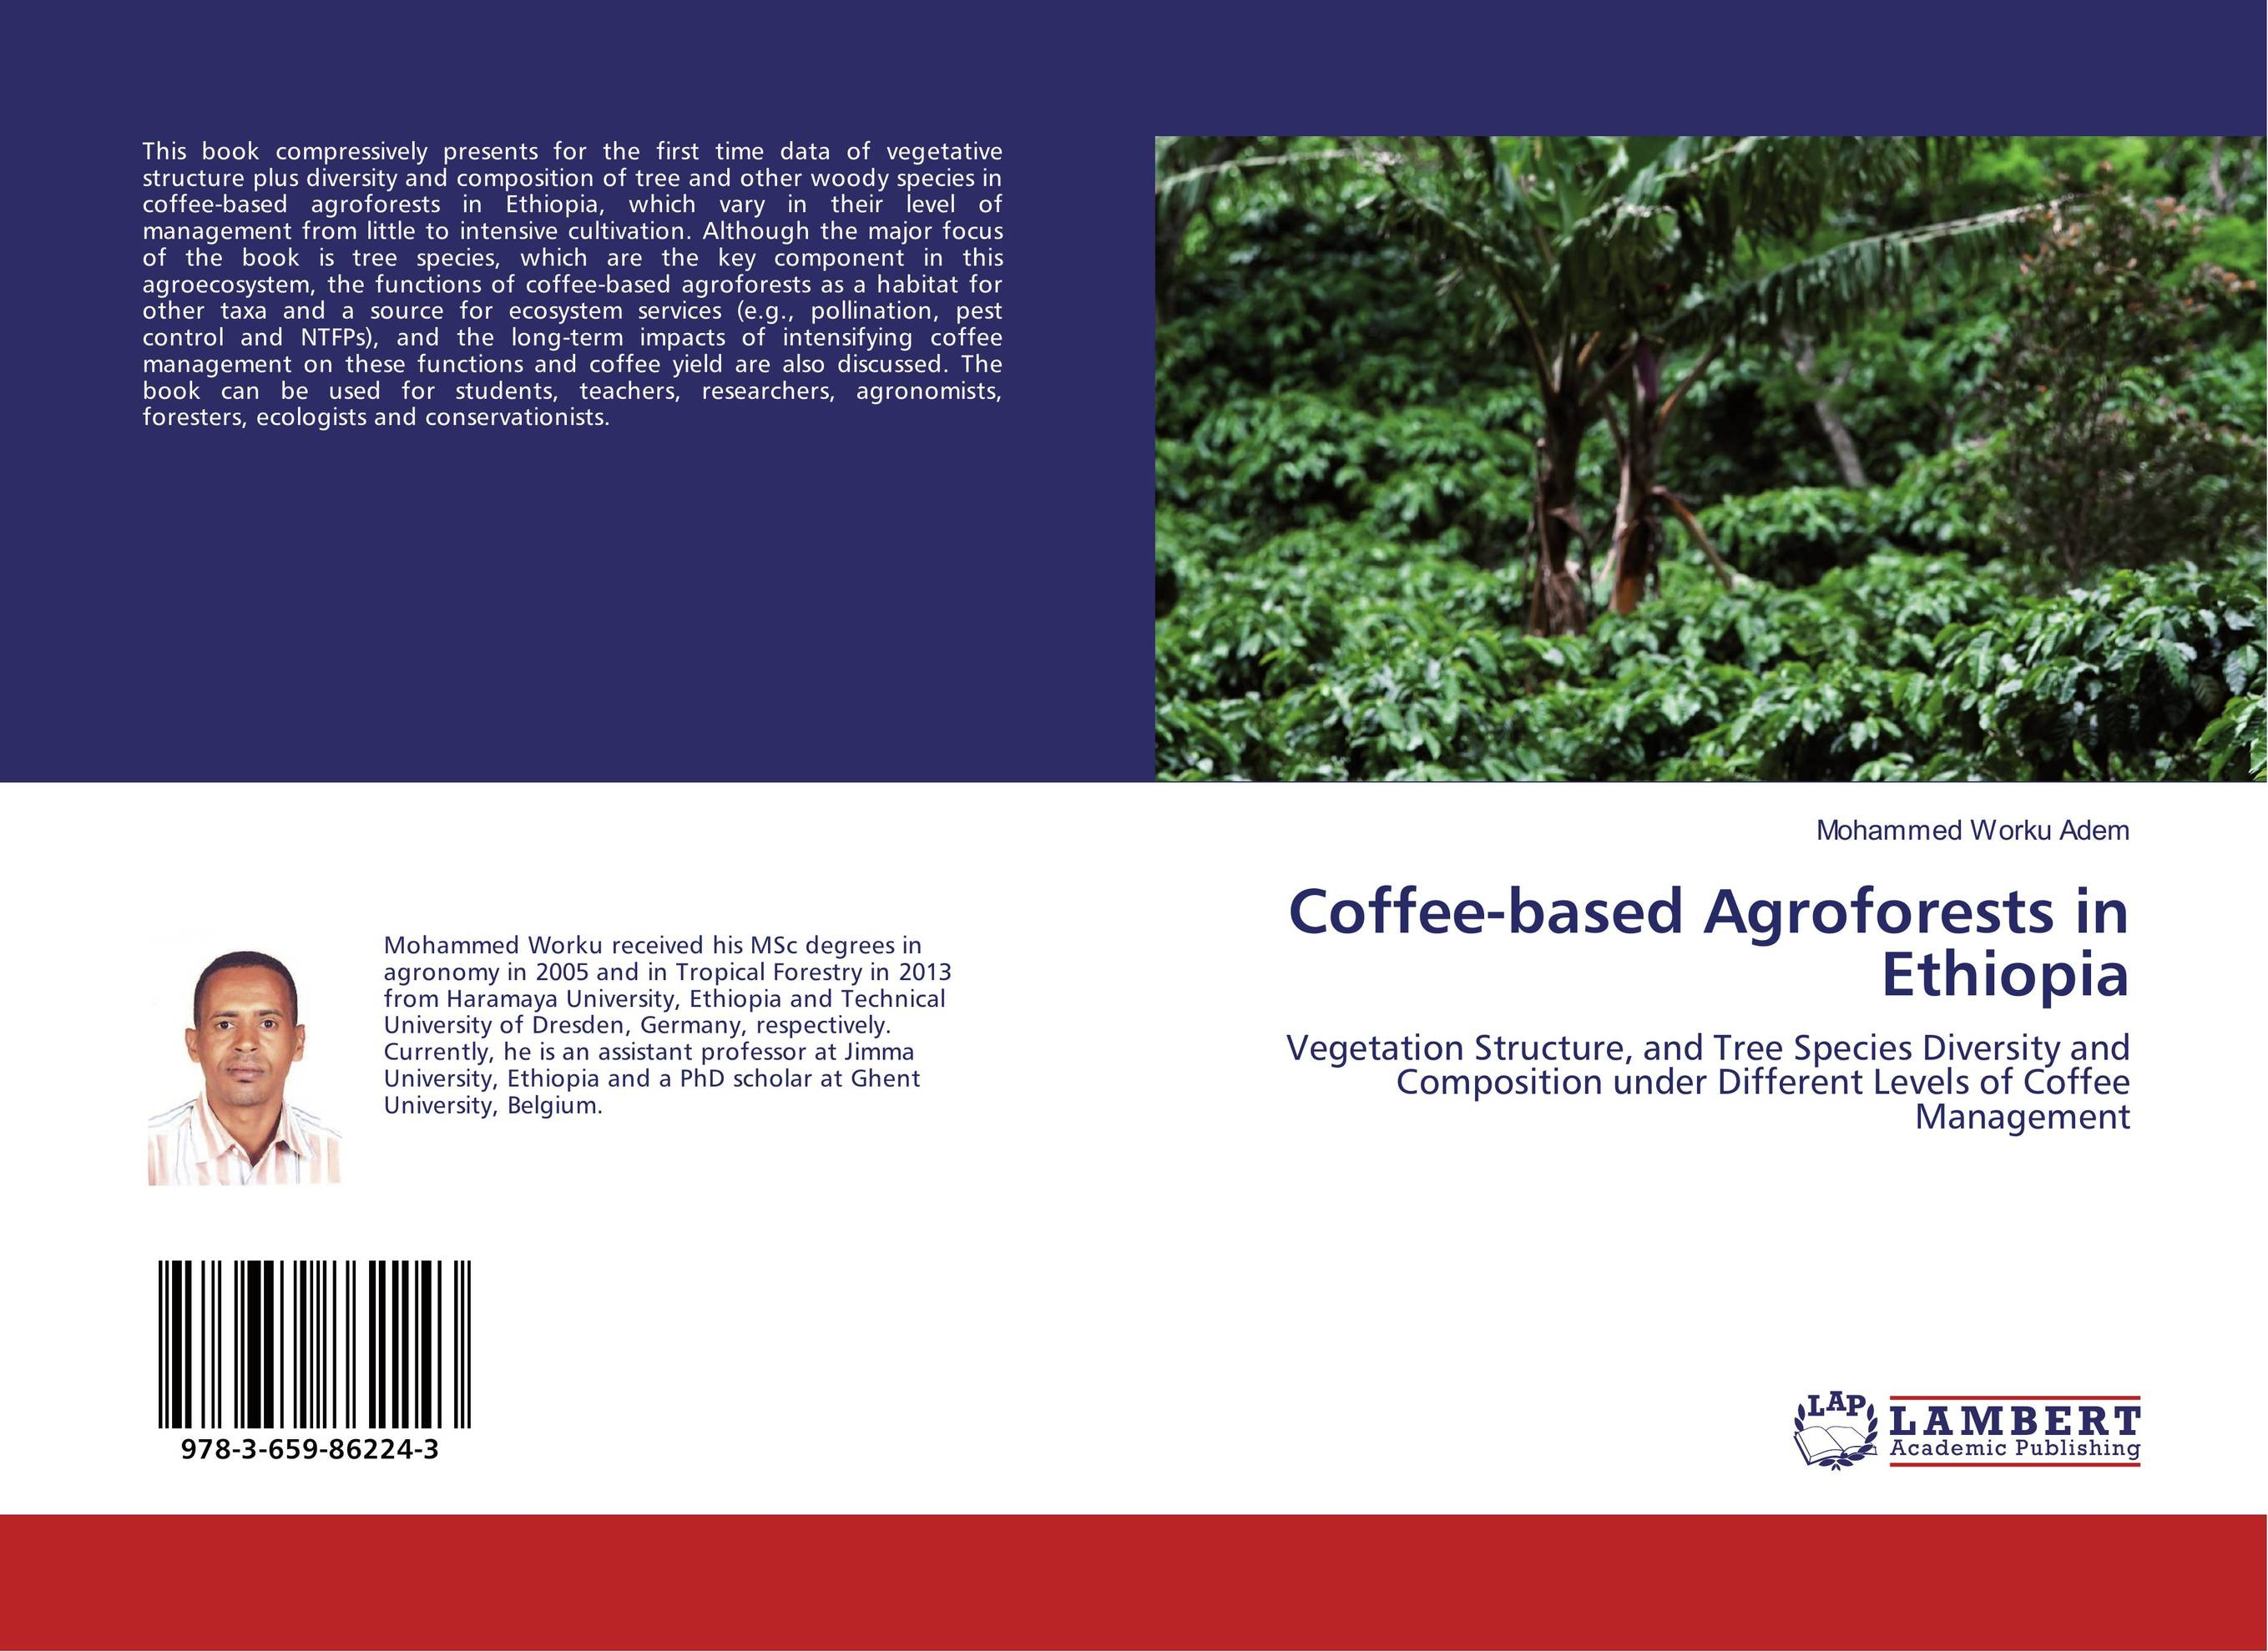 Coffee-based Agroforests in Ethiopia a decision support tool for library book inventory management